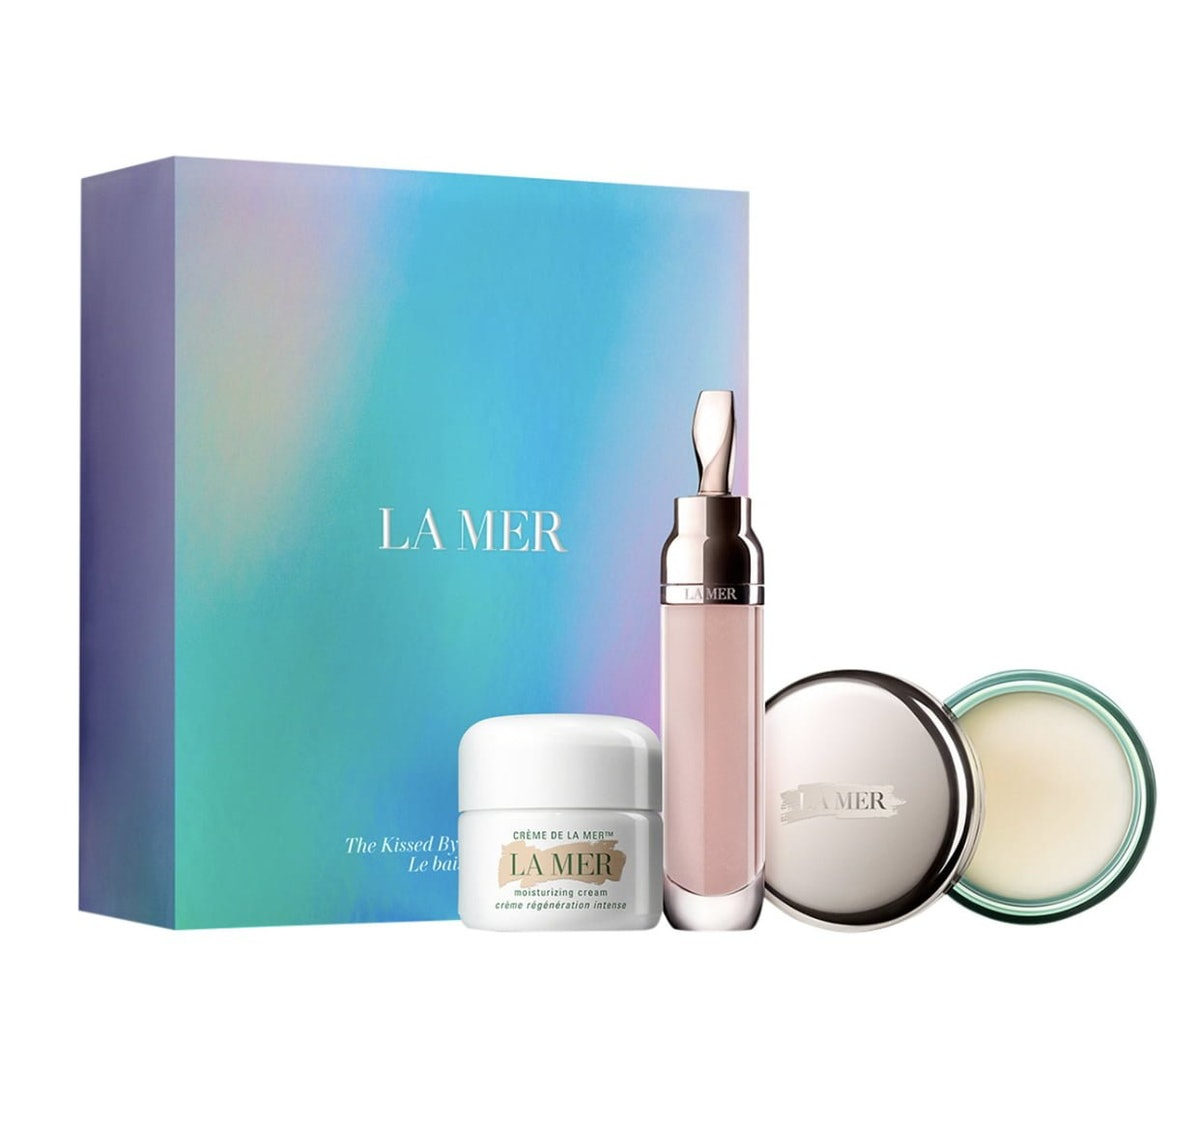 Le Mer: The Lip and Face Collection